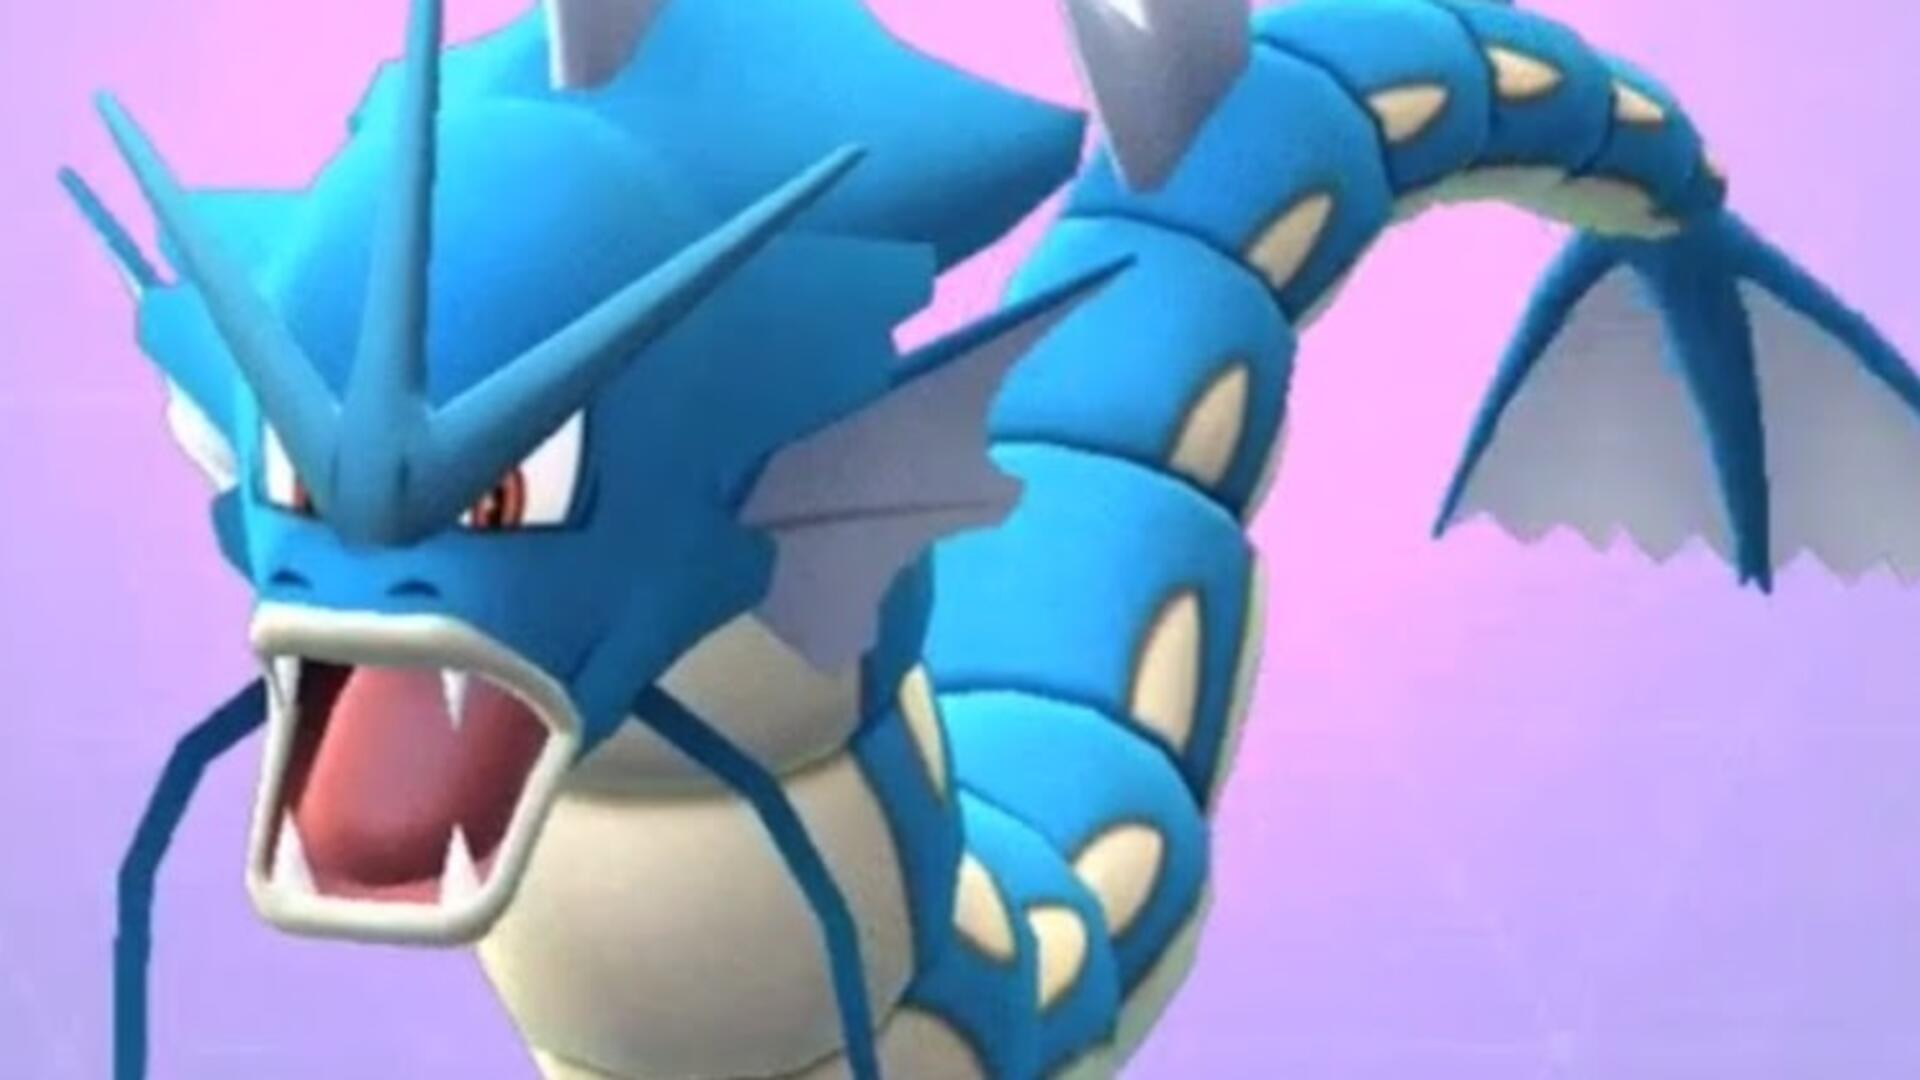 Pokémon Go: How to Get Gyarados, Snorlax, Lapras and Other Rare Pokémon